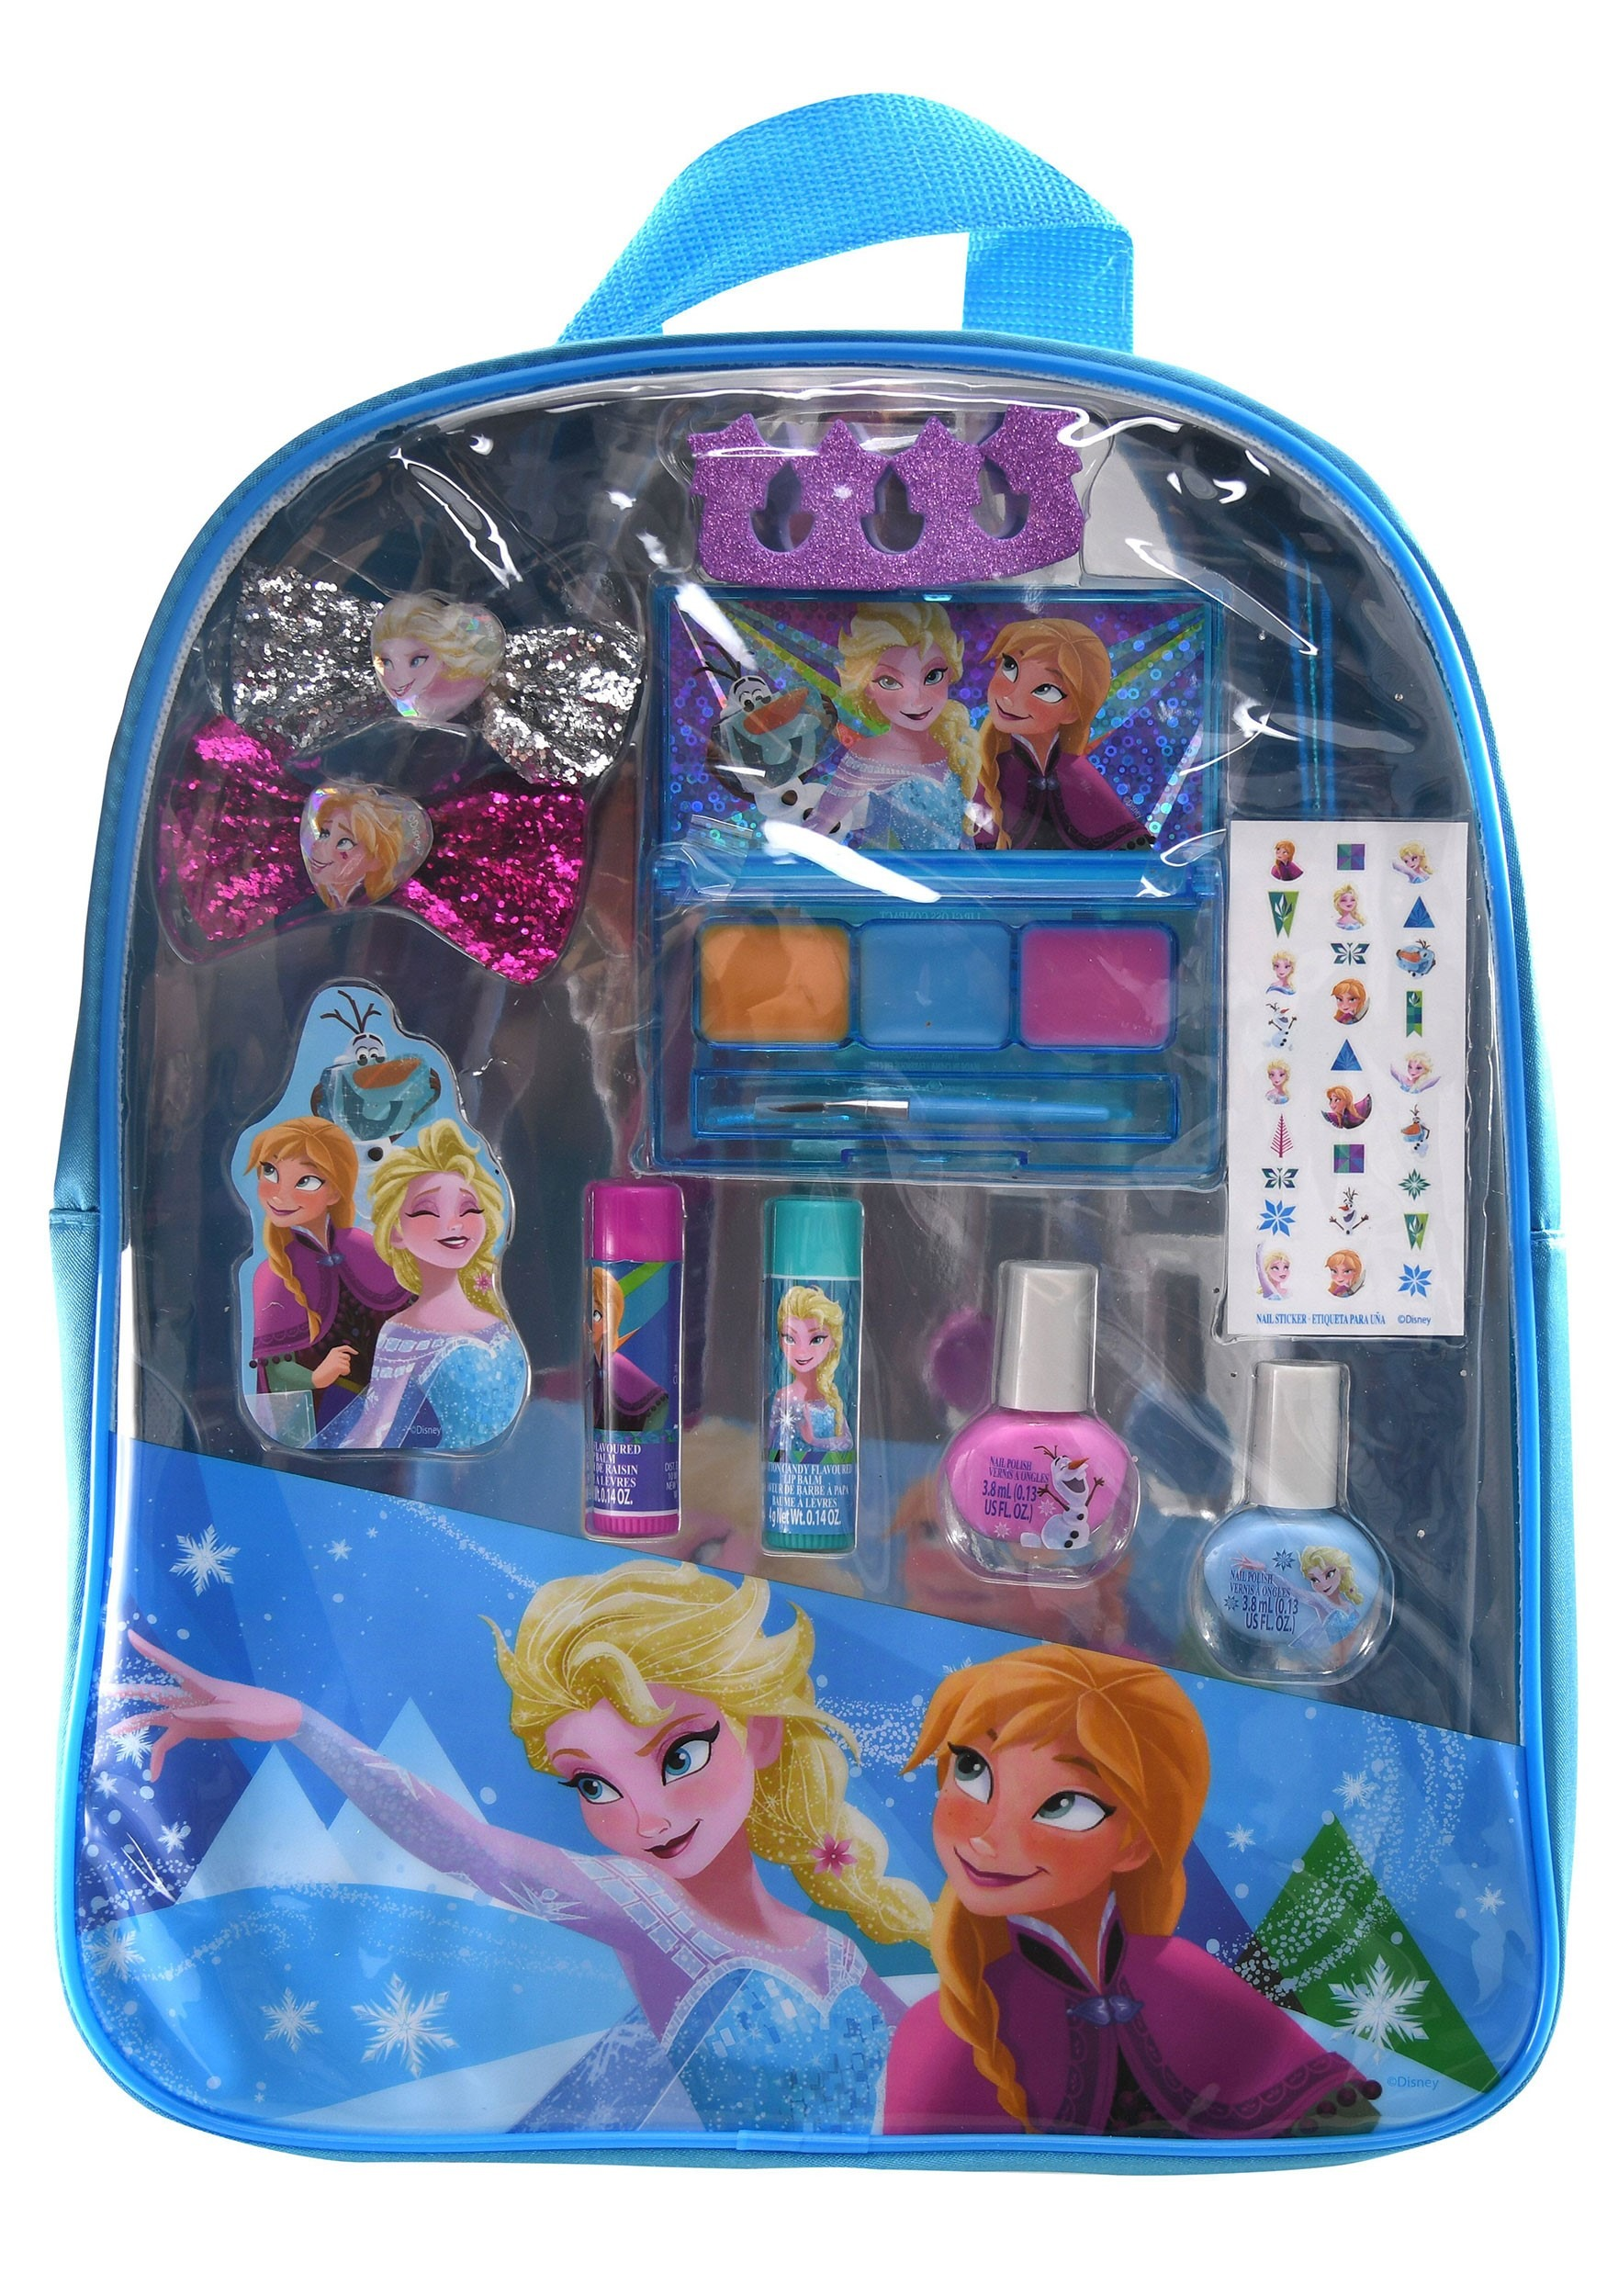 a45f239f94f4 Frozen Cosmetics in Backpack Set